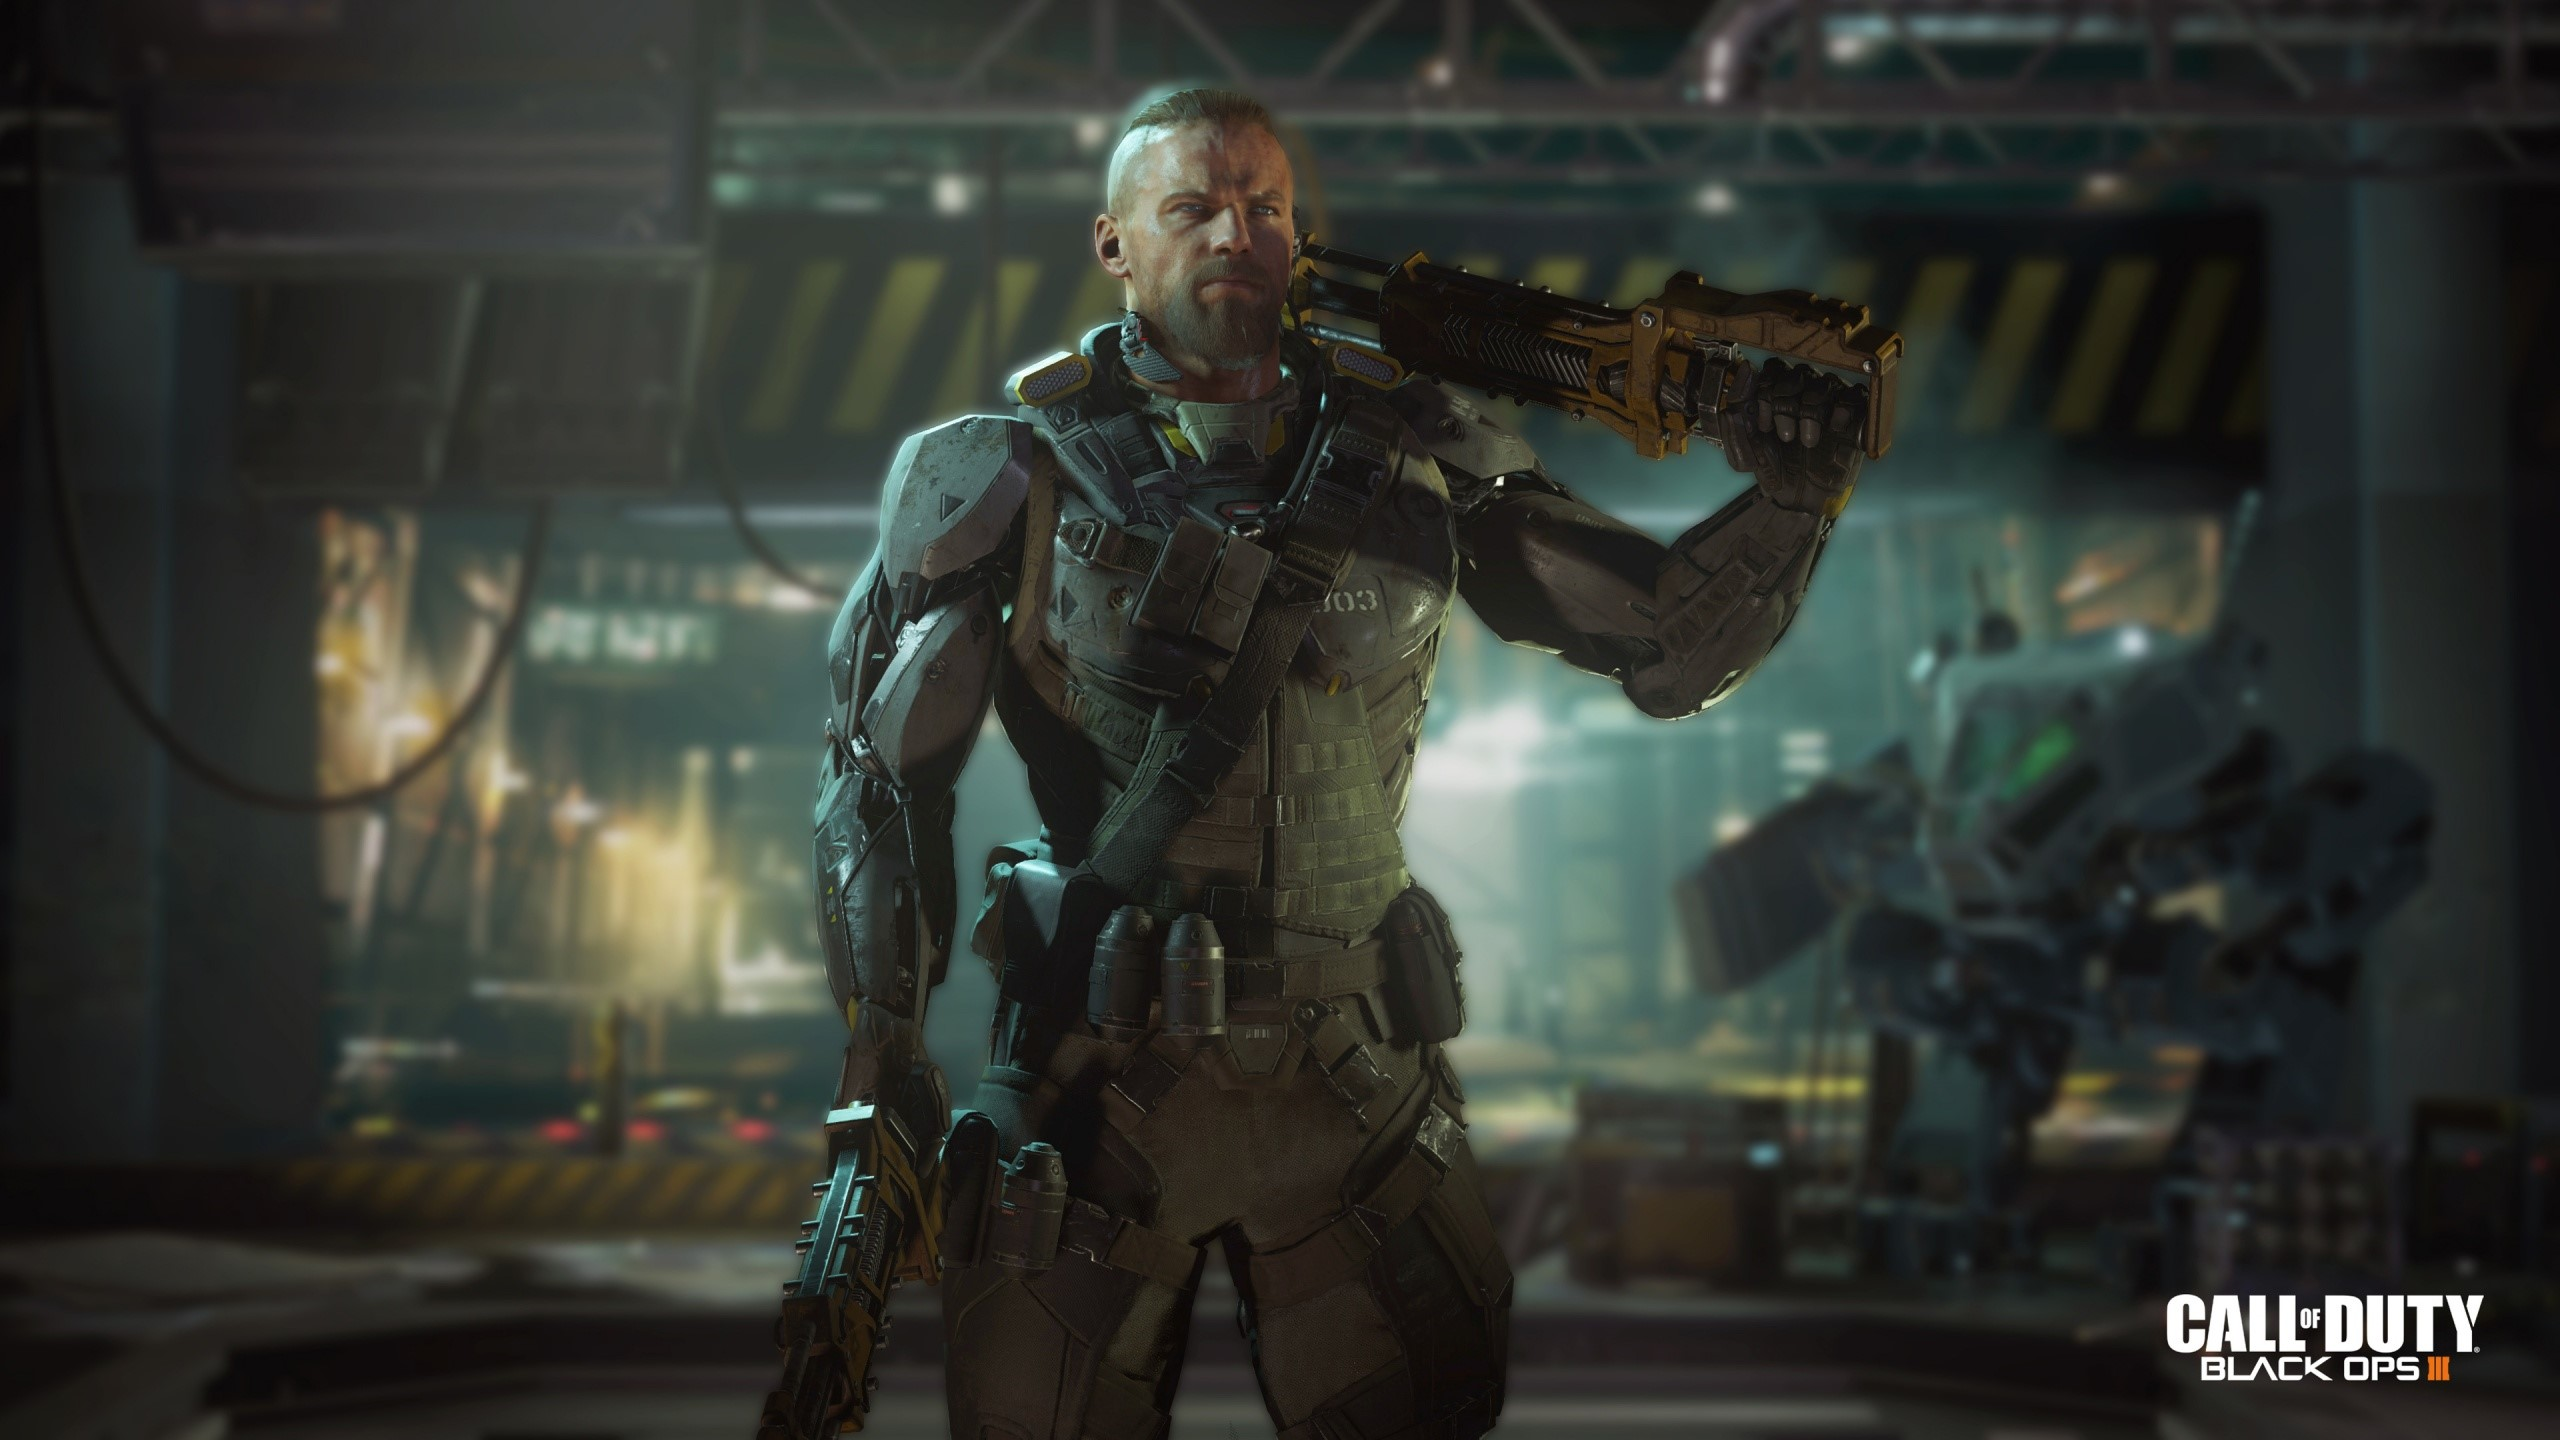 Wallpaper Call of Duty Specialist Black Ops 3